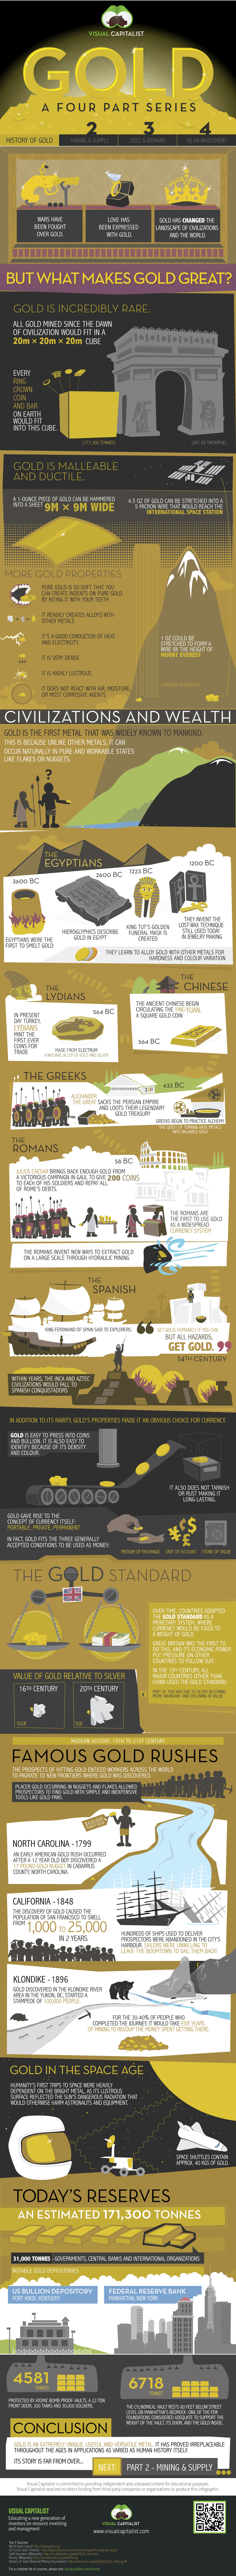 The History of Gold as a Precious Metal